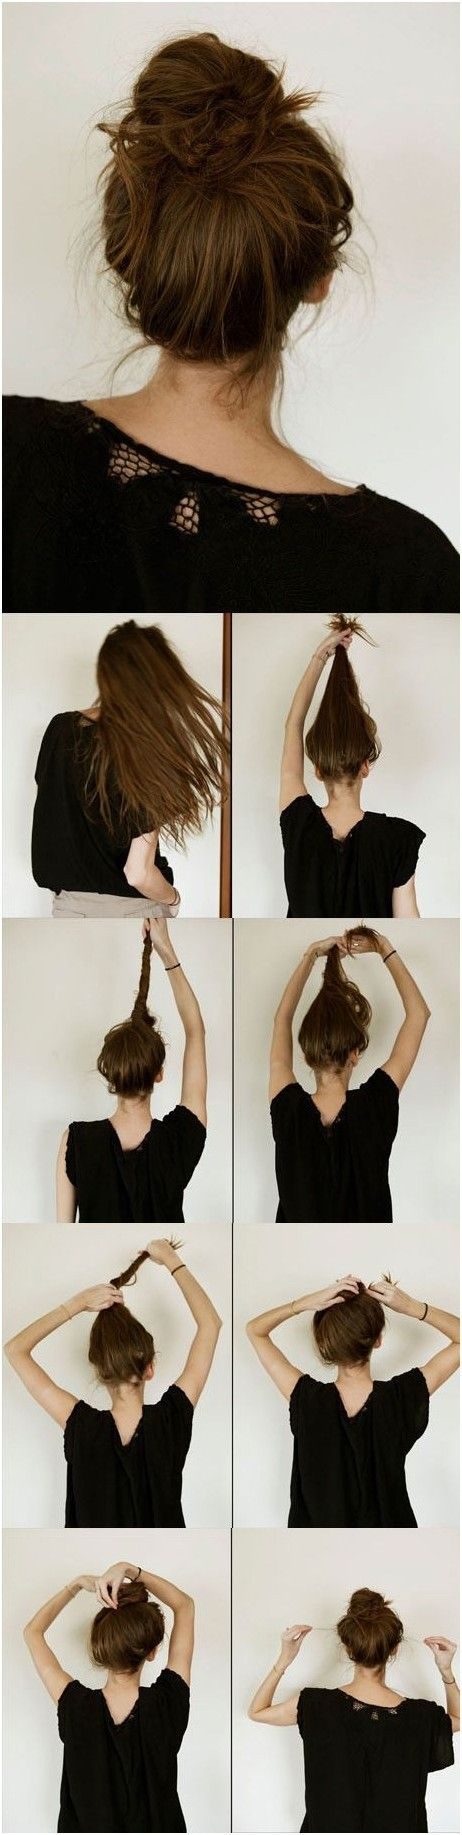 How to Make Cute Everyday Hairstyles forecast